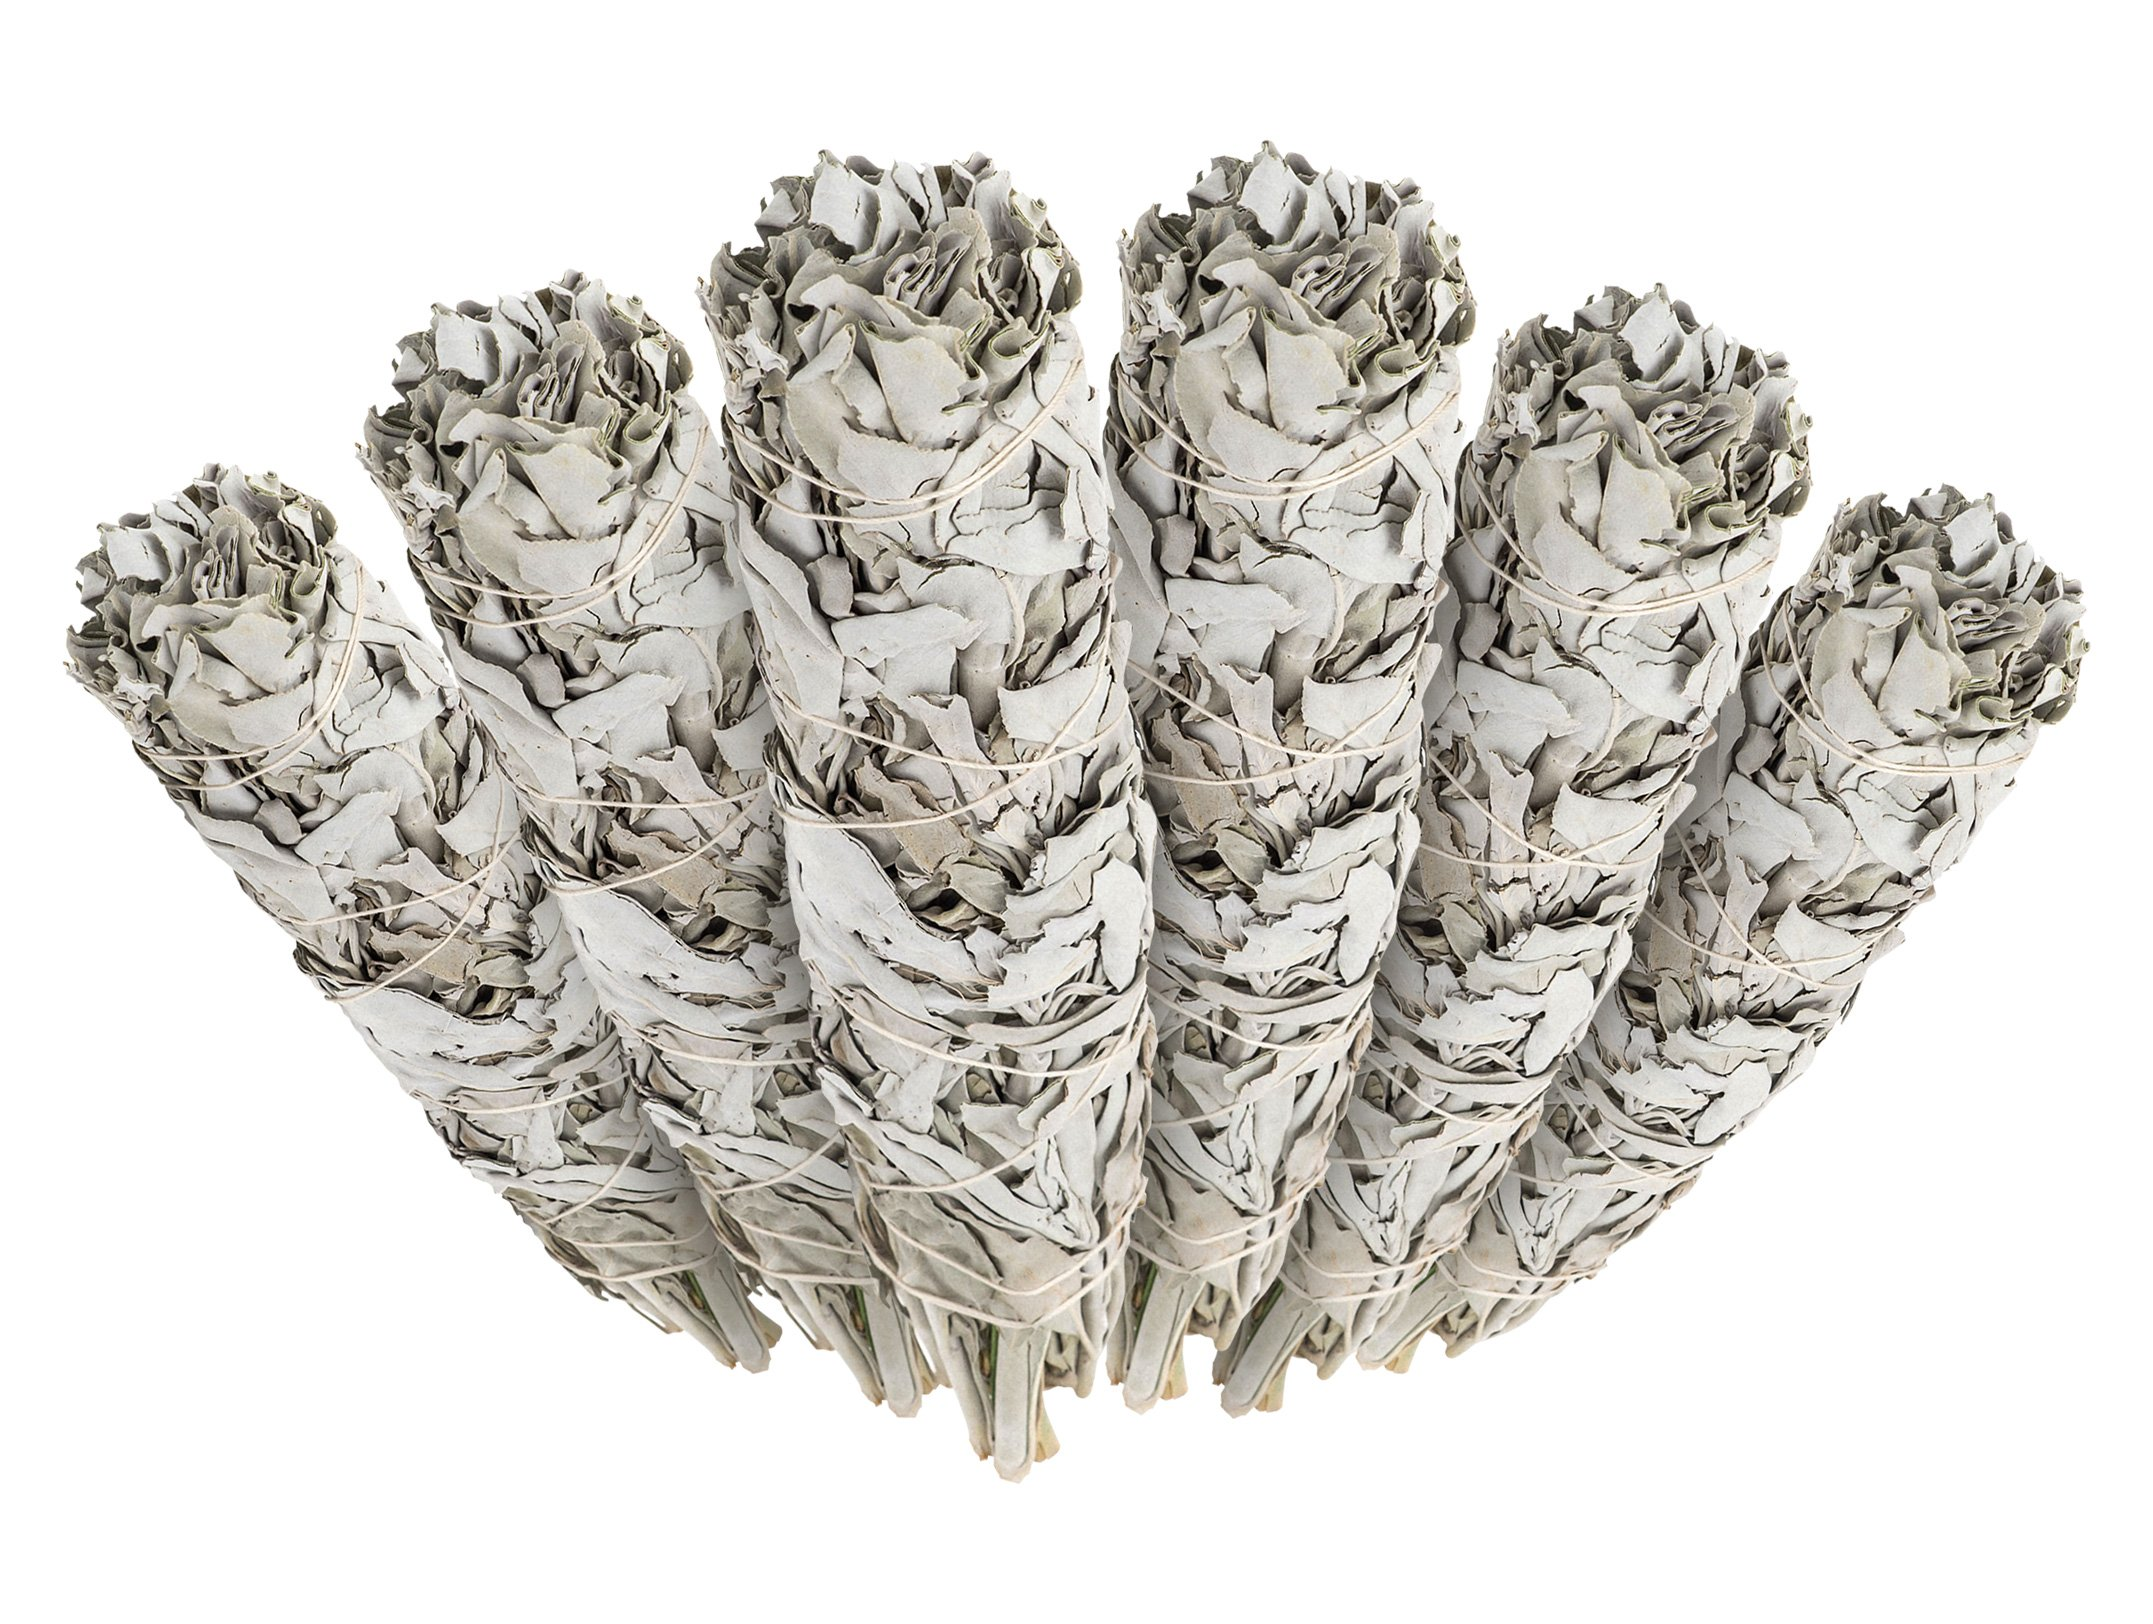 6 Pack - Premium California White Sage Smudge Sticks, Each Stick Approximately 5 Inches Long - Made in USA by Incense Garden